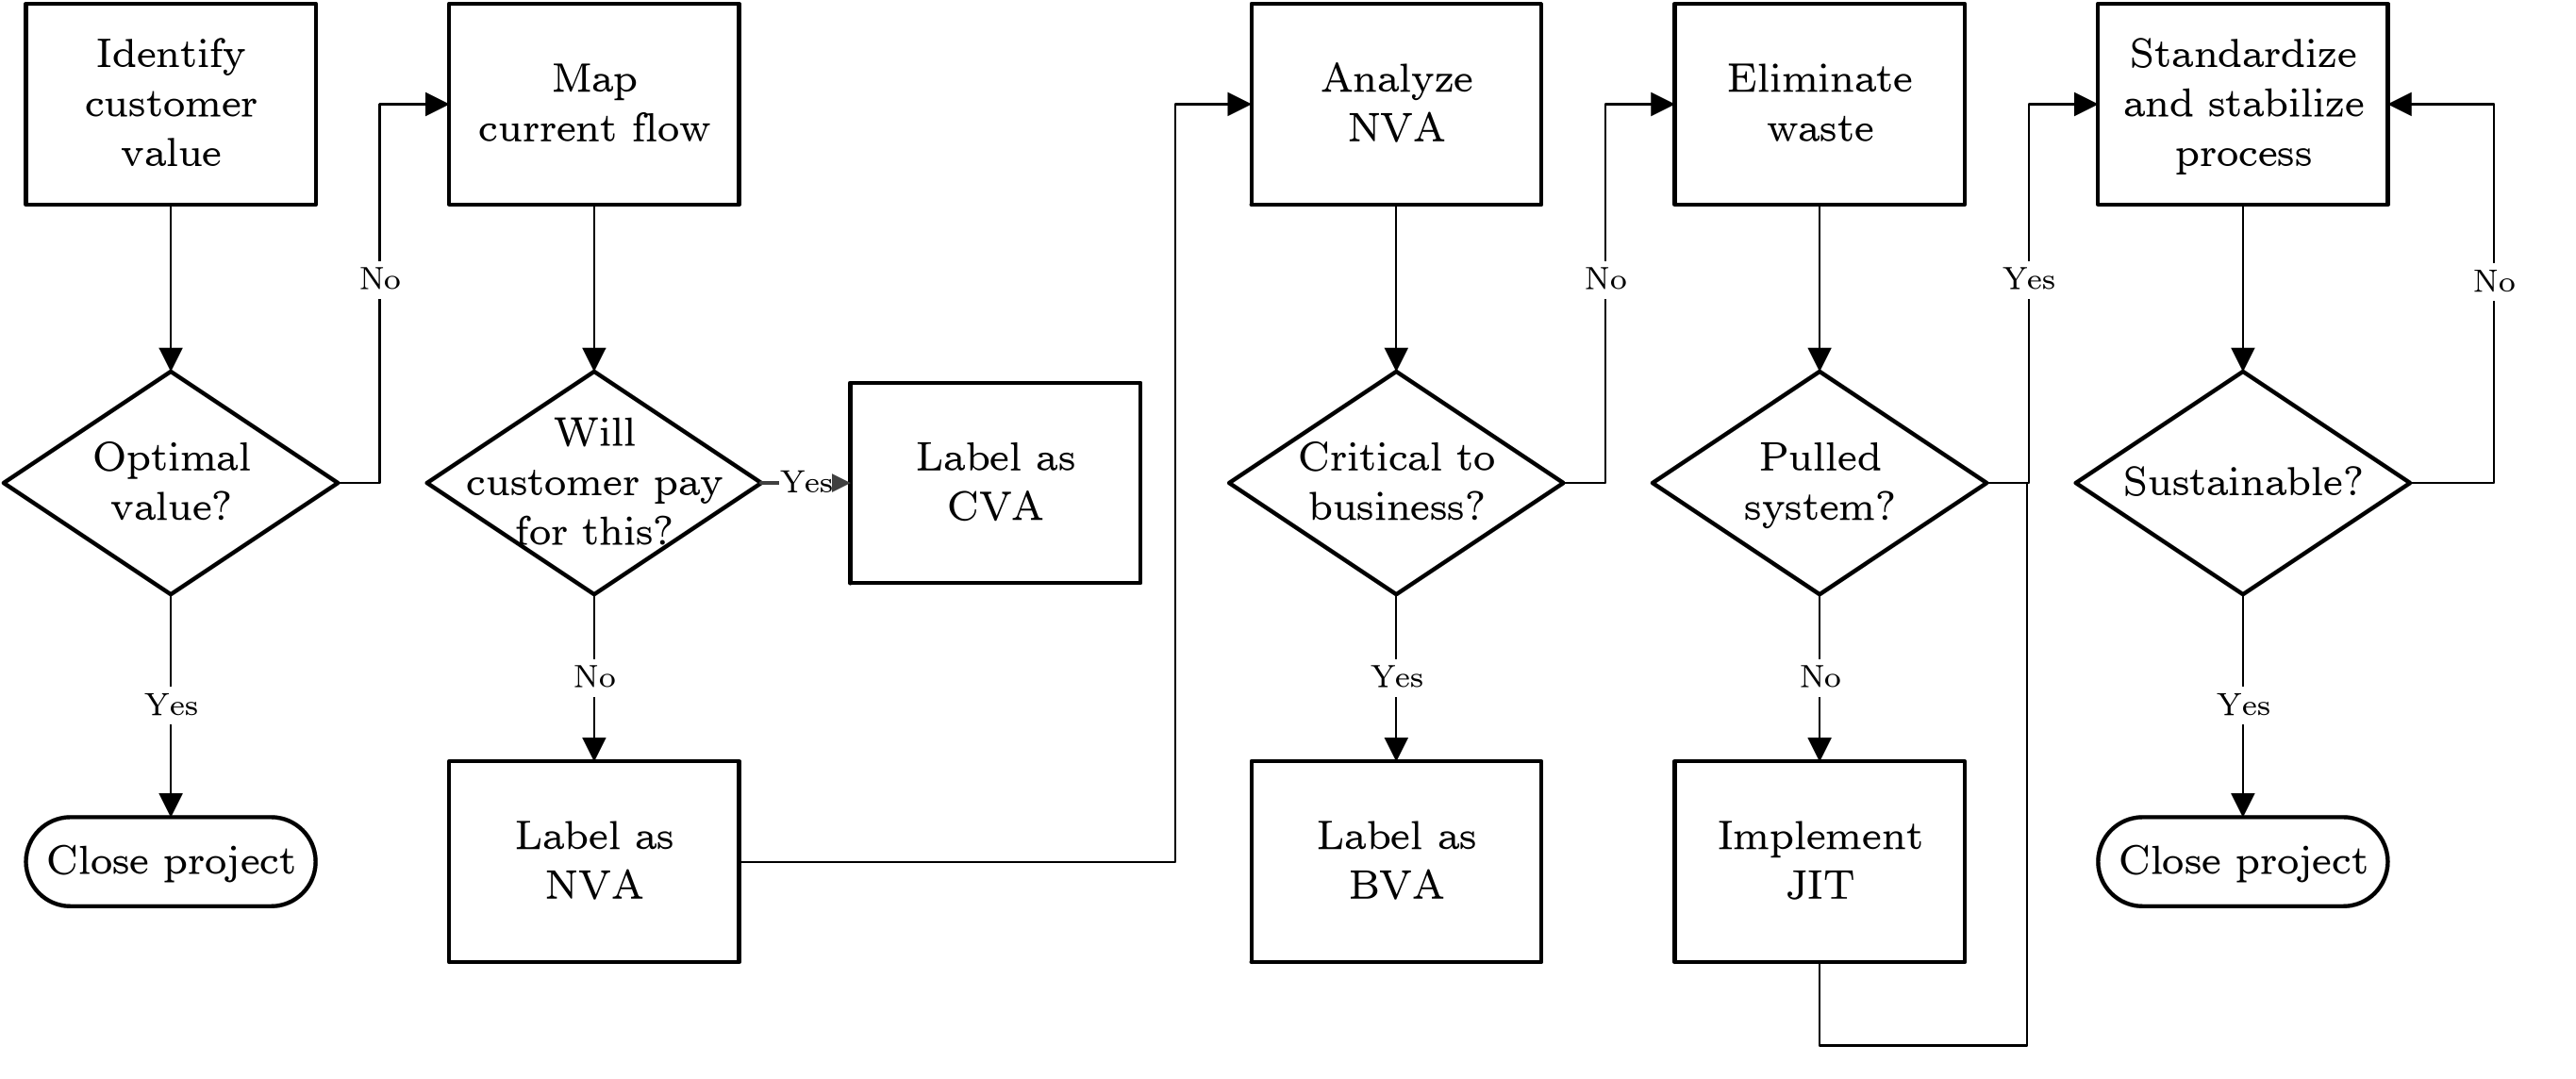 High-level process flow (adapted from Hambleton, 2008)